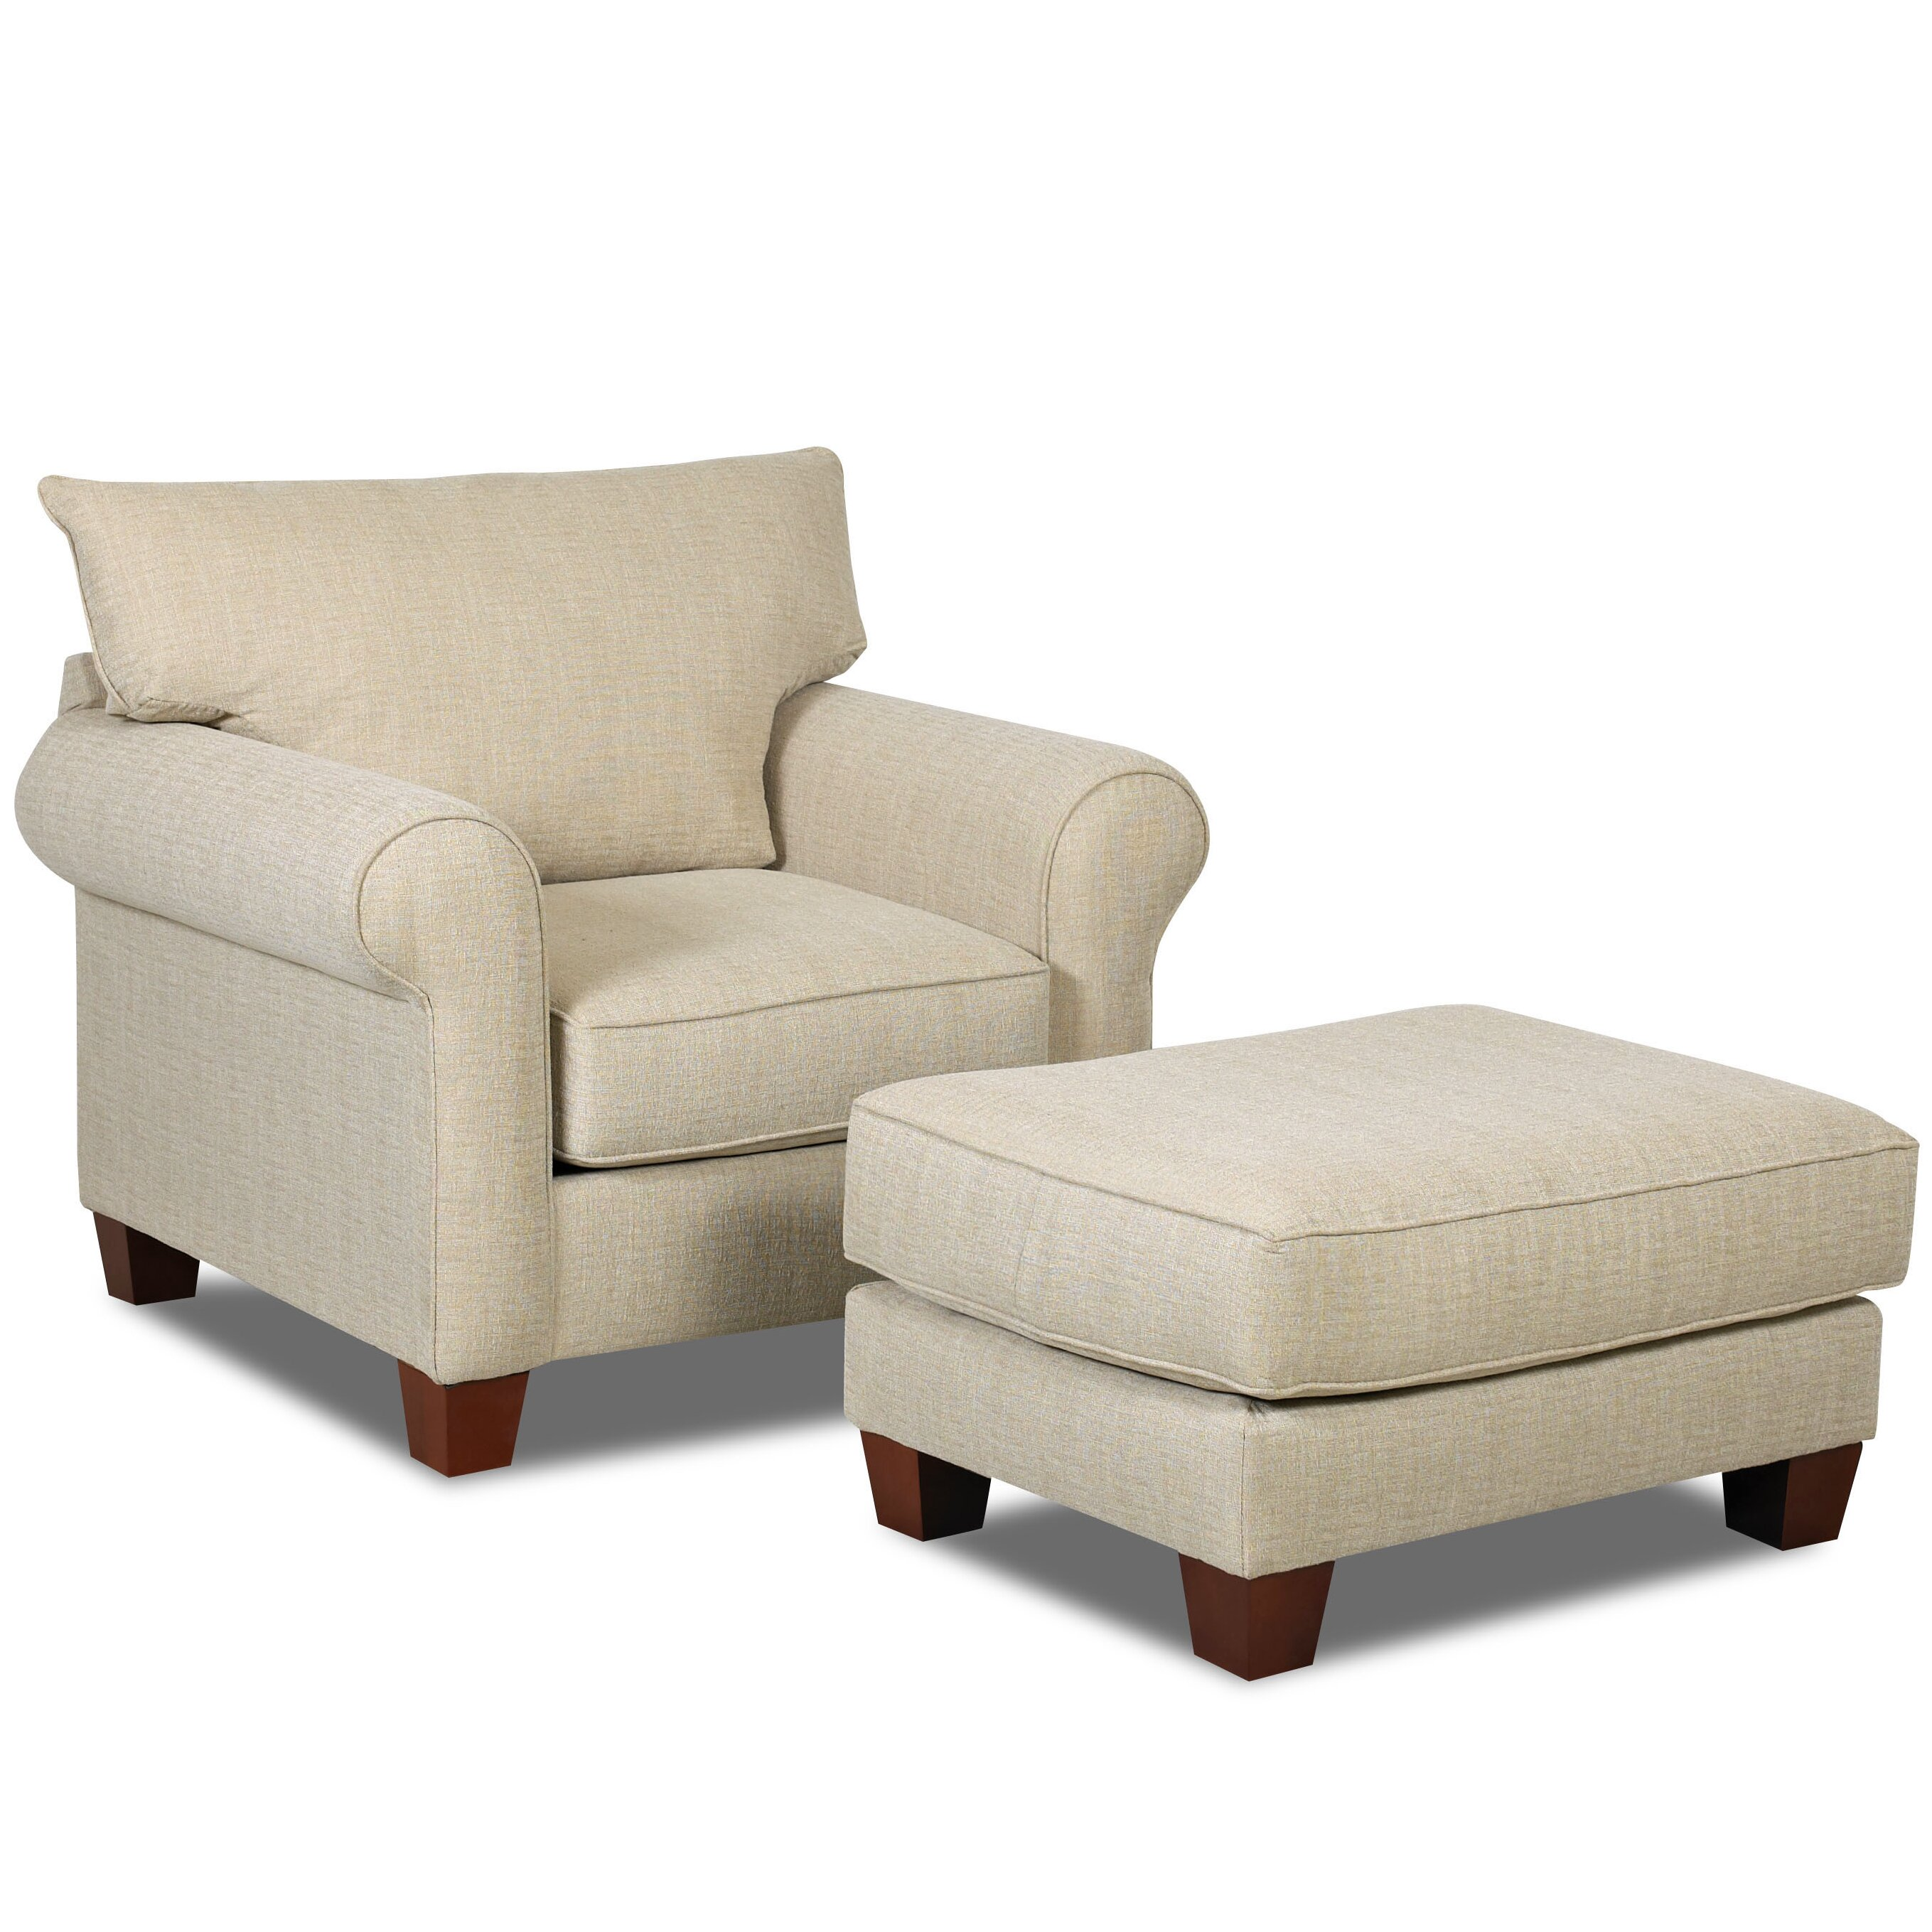 Wheelock Arm Chair and Ottoman | Wayfair